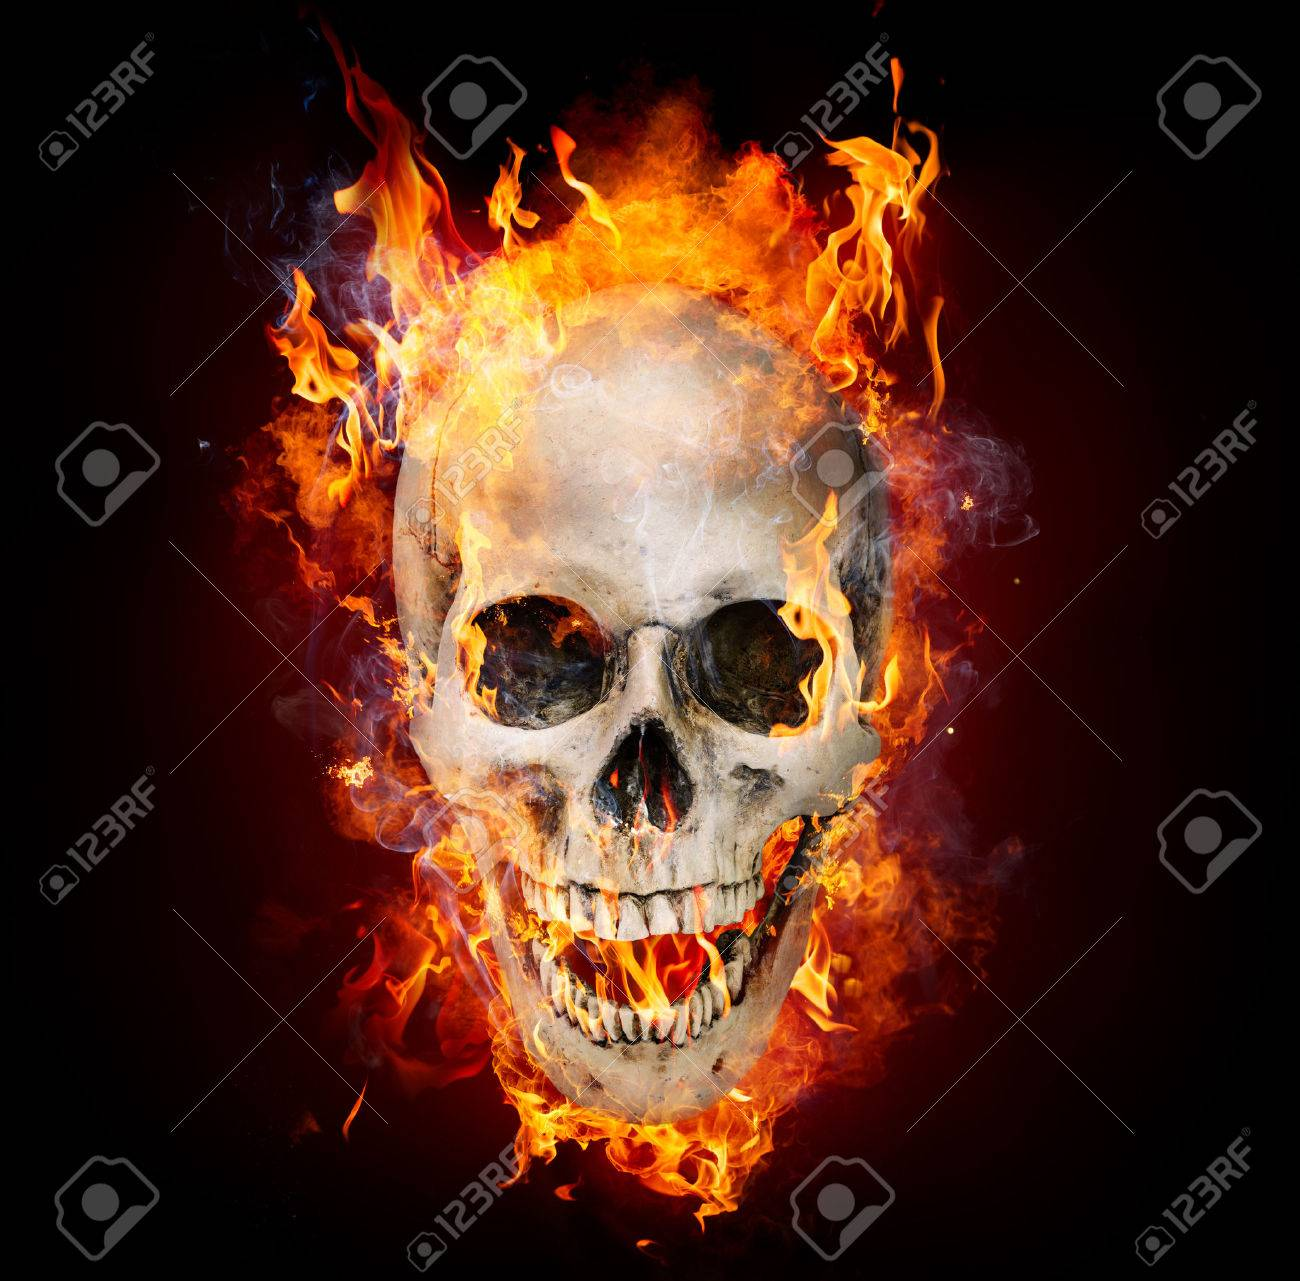 Fire skull stock photos royalty free fire skull images satanic skull in flames in the darkness stock photo voltagebd Choice Image